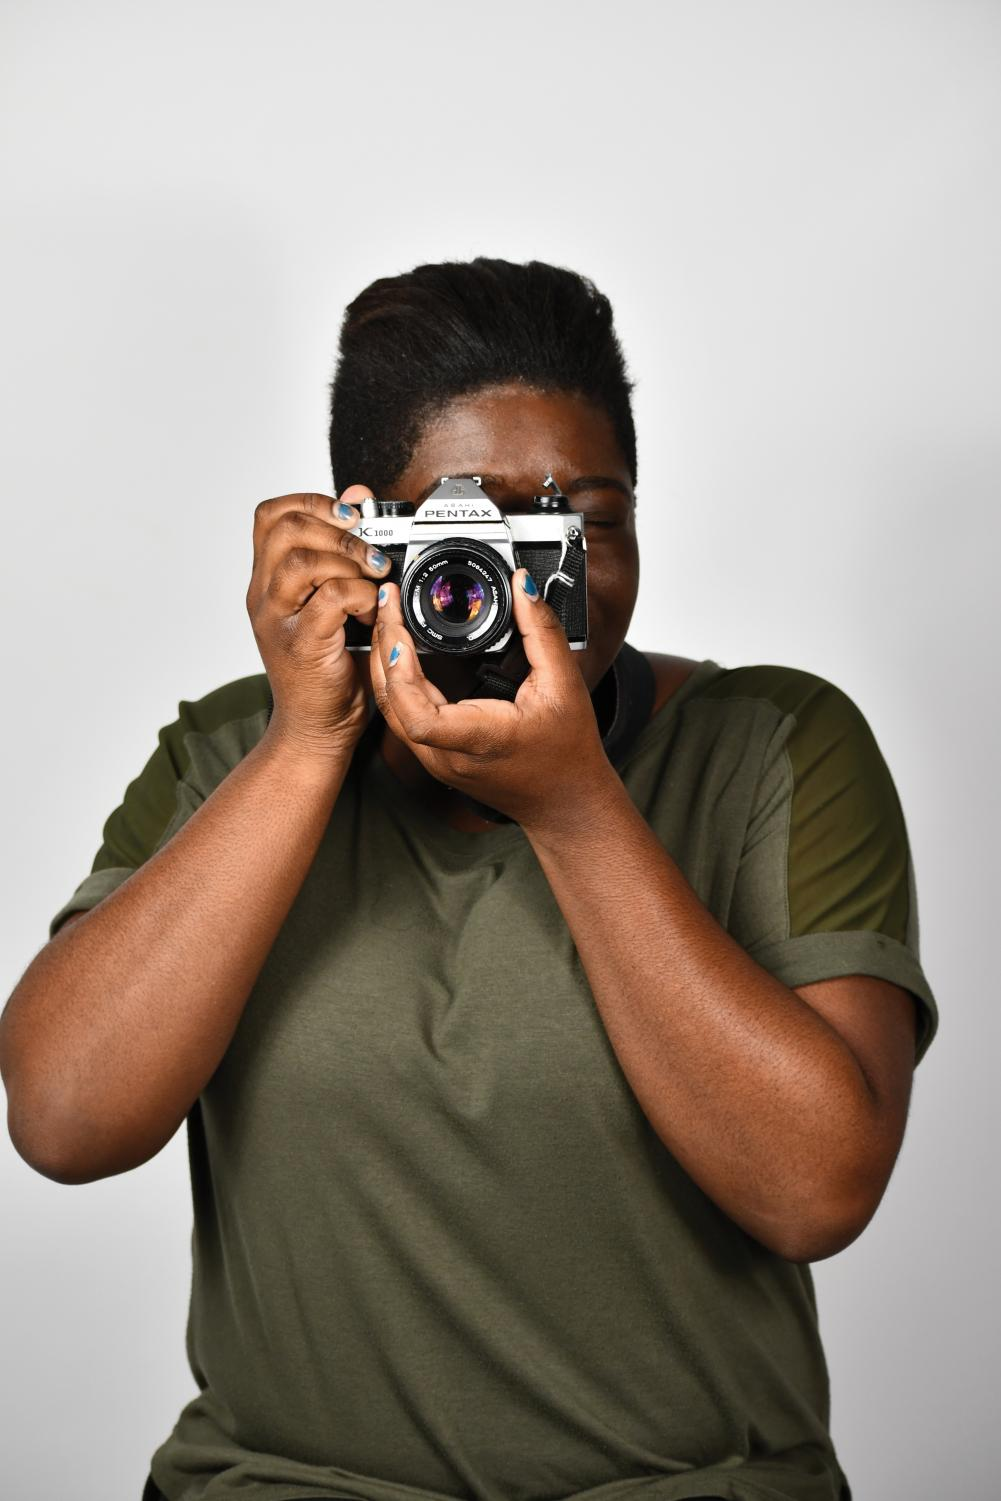 Shayna Hunter enjoys photography because of the creativity involved.